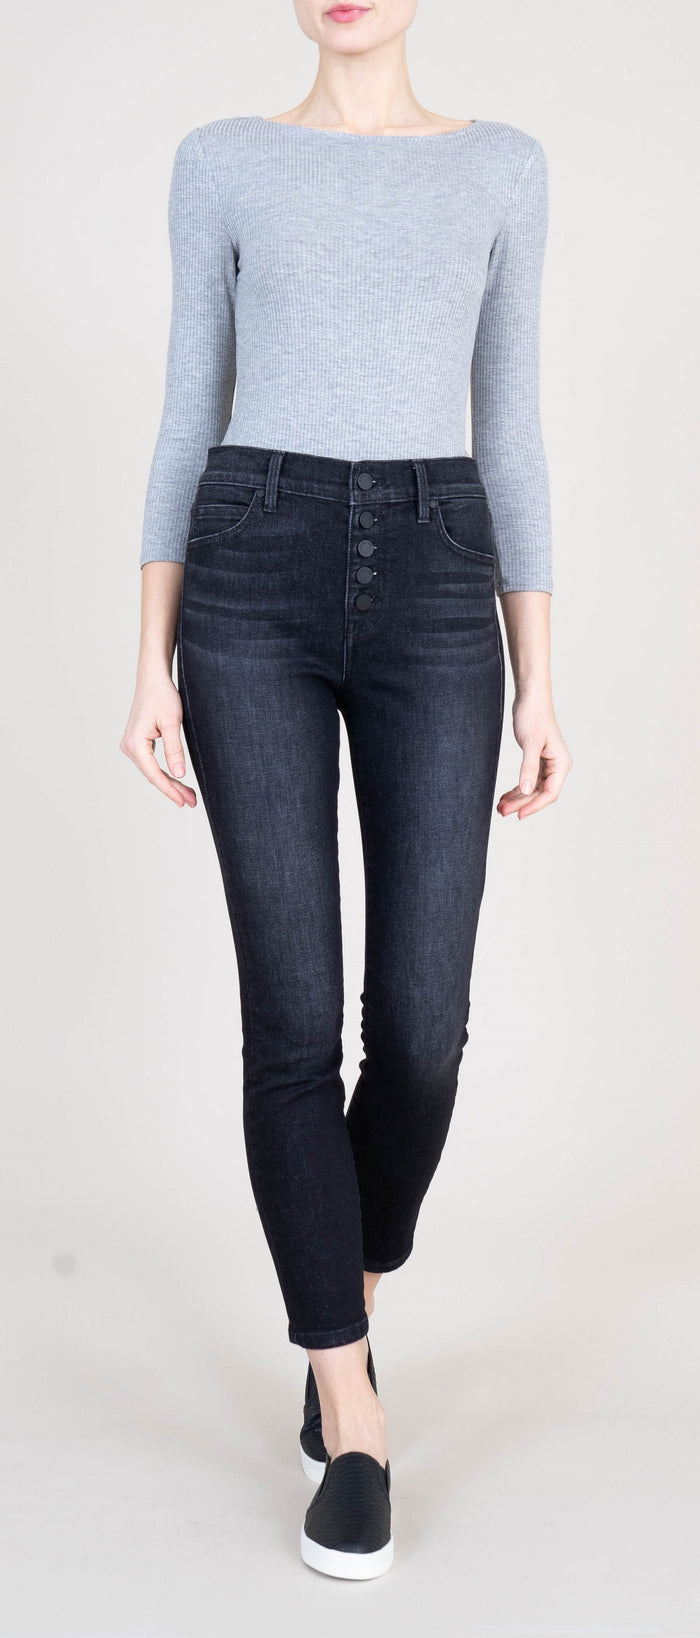 Heidi Exposed Button Fly Jeans - Brevado